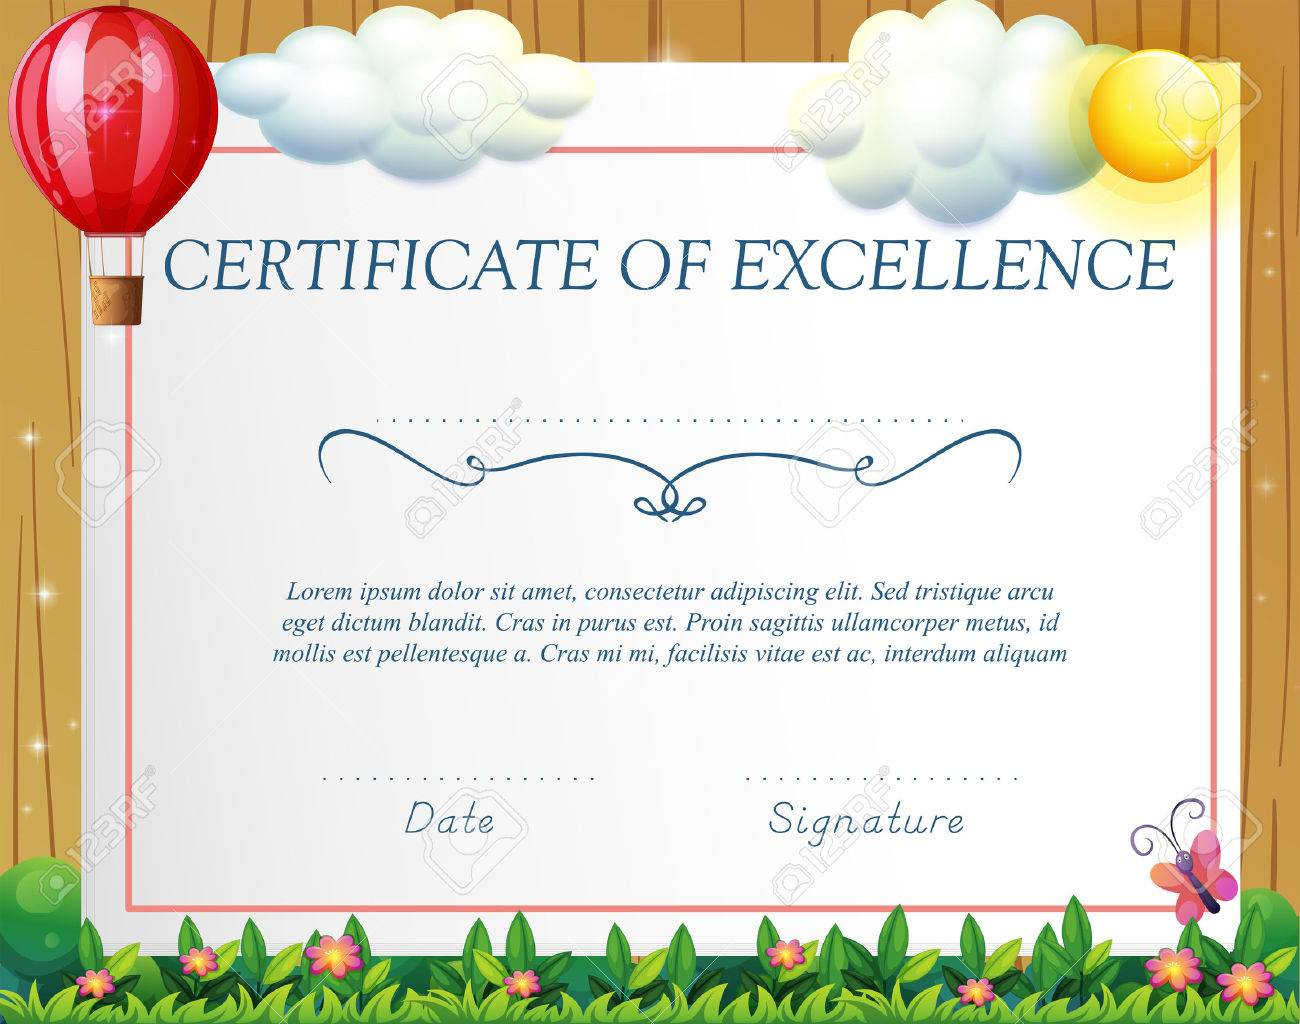 Certificate Template With Balloon Background Royalty Free Cliparts ...